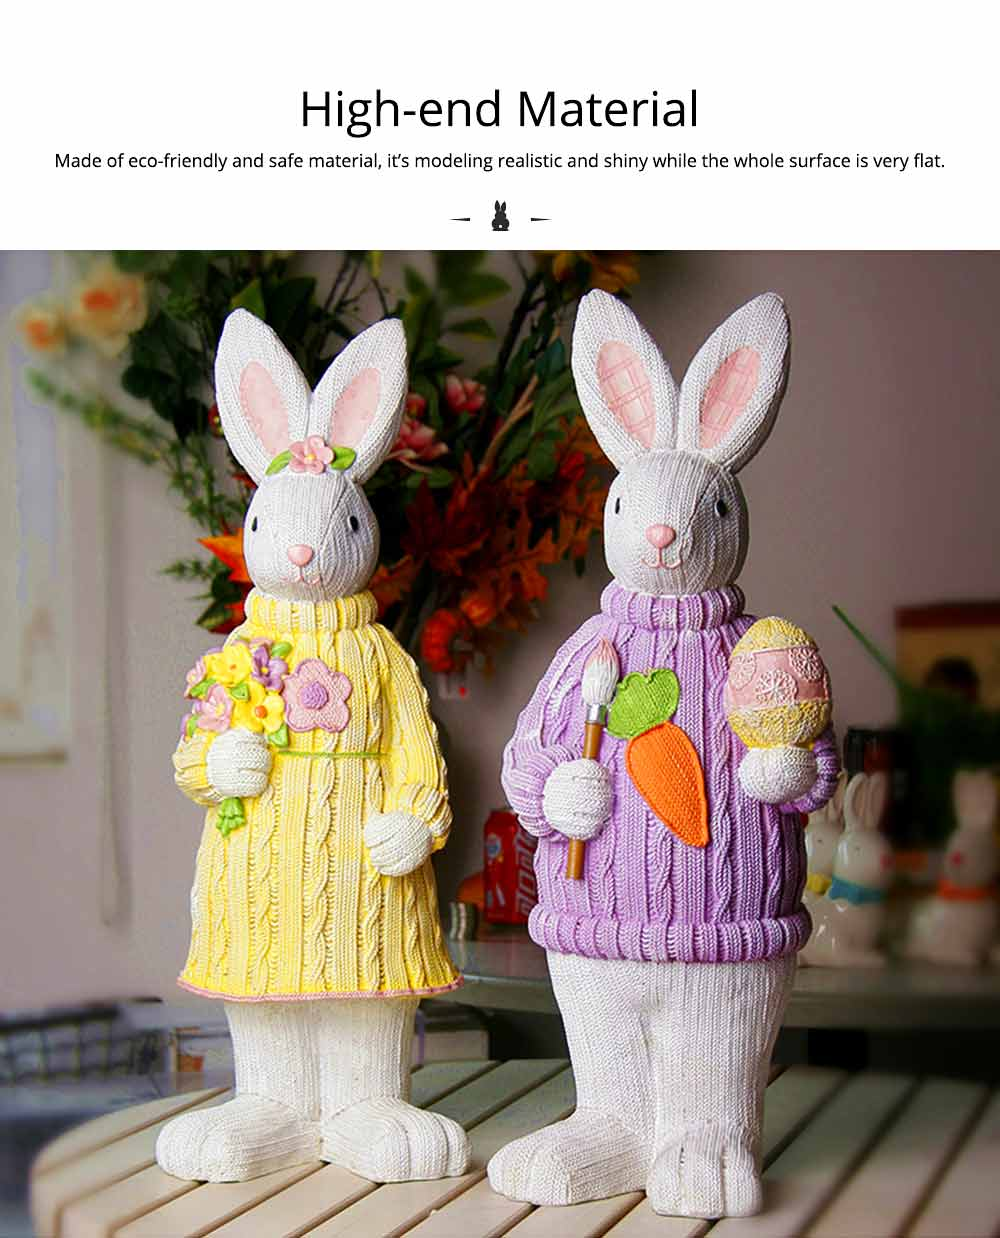 Resin Easter Hand-Painted Bunny with Seating Post for Any Room, Shelf or Windowsill, Decorative Centerpiece 2